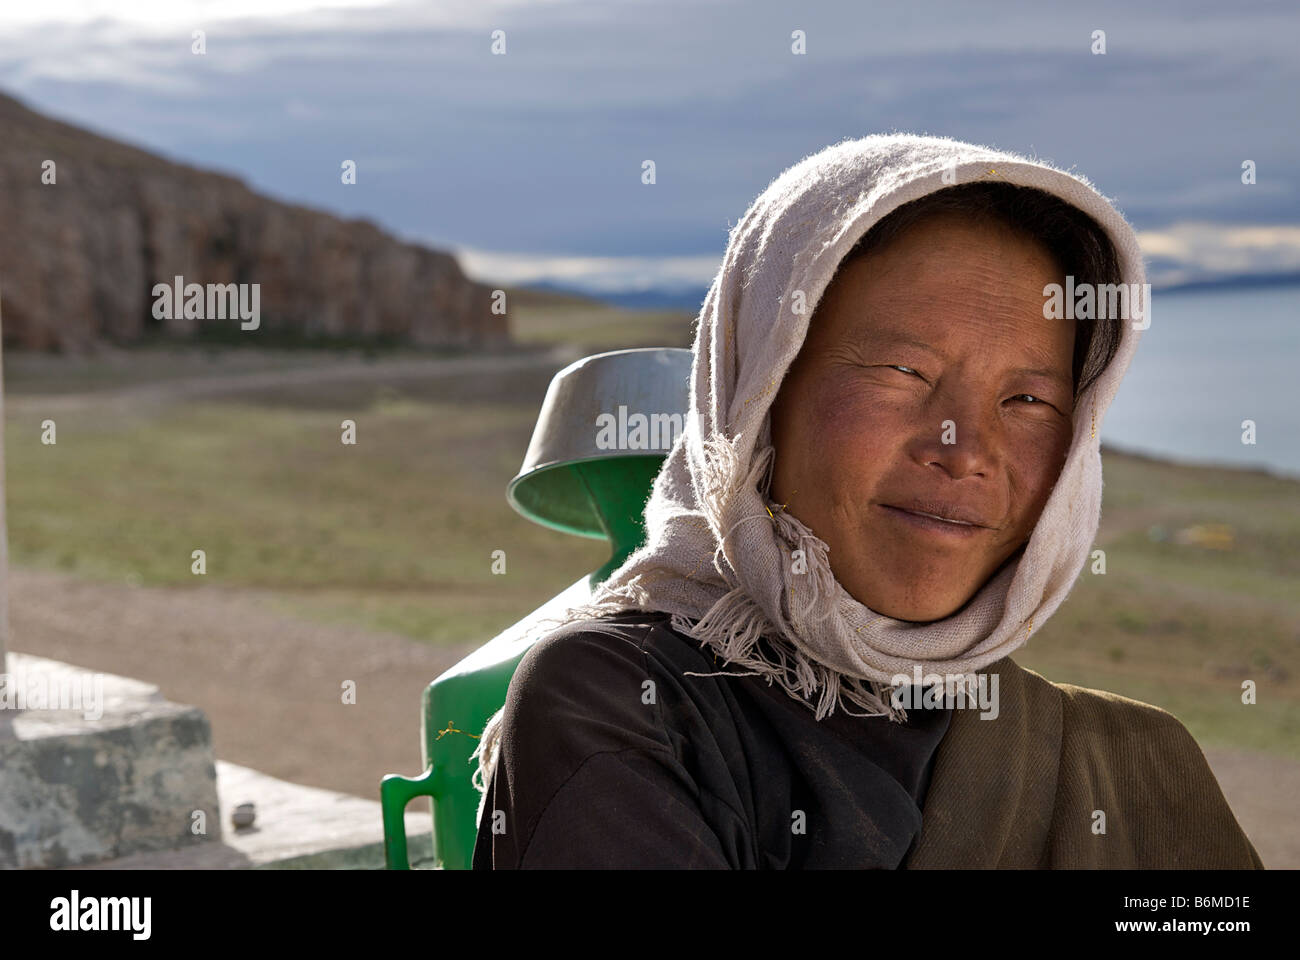 Portrait of a Tibetan woman at Nam Tso lake, Tibet - Stock Image